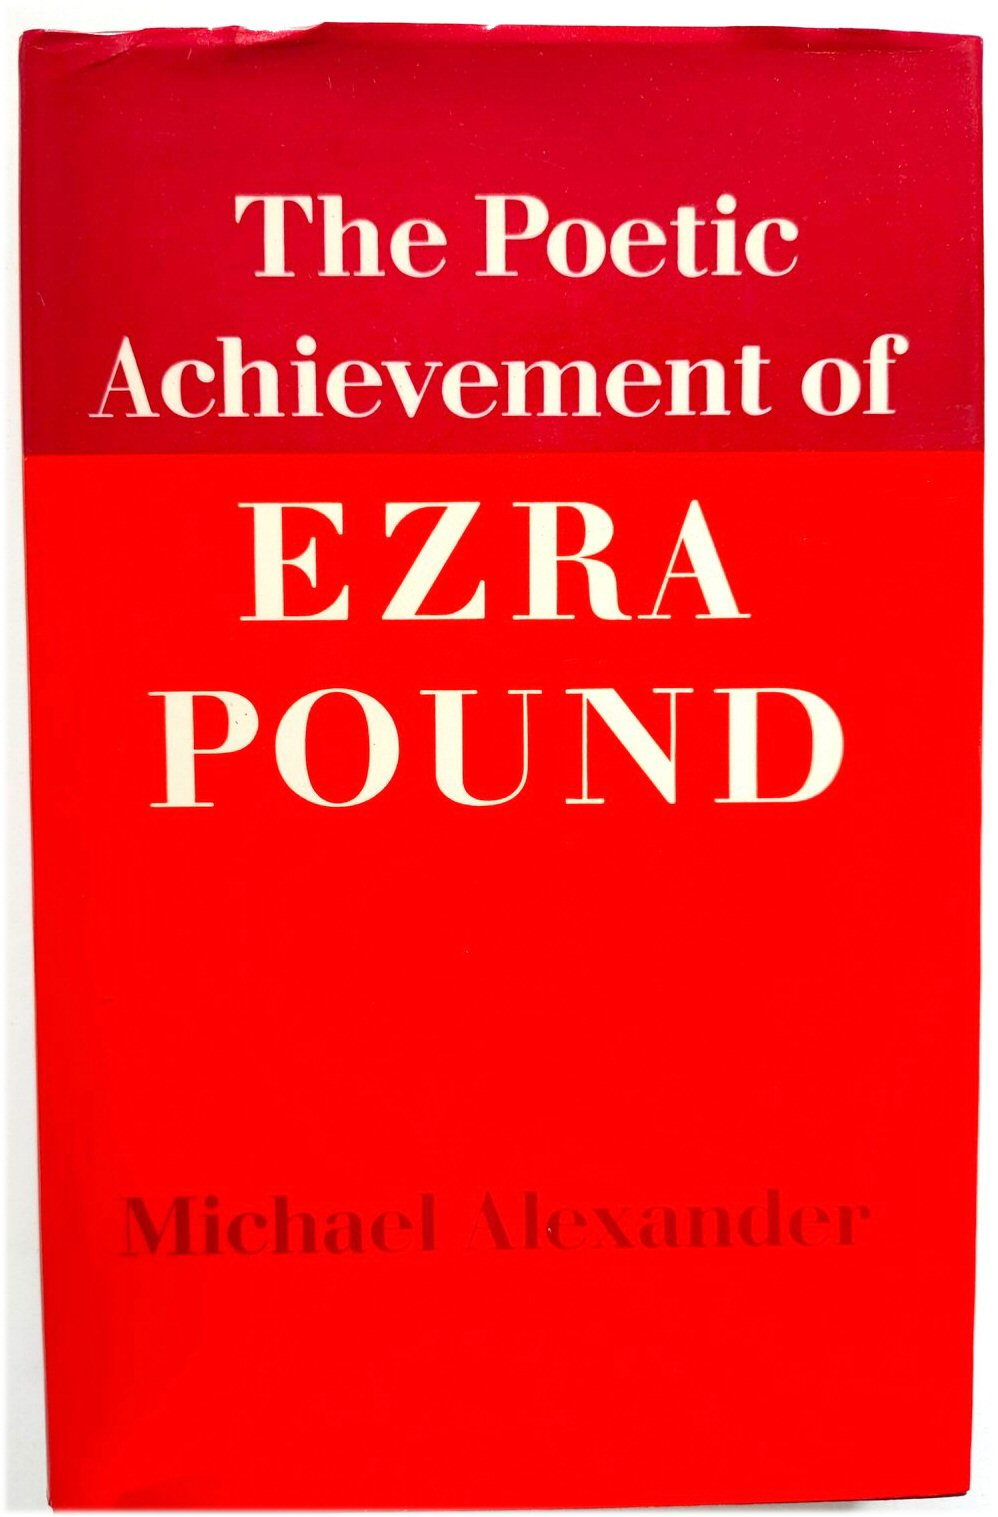 Image for The Poetic Achievement of Ezra Pound